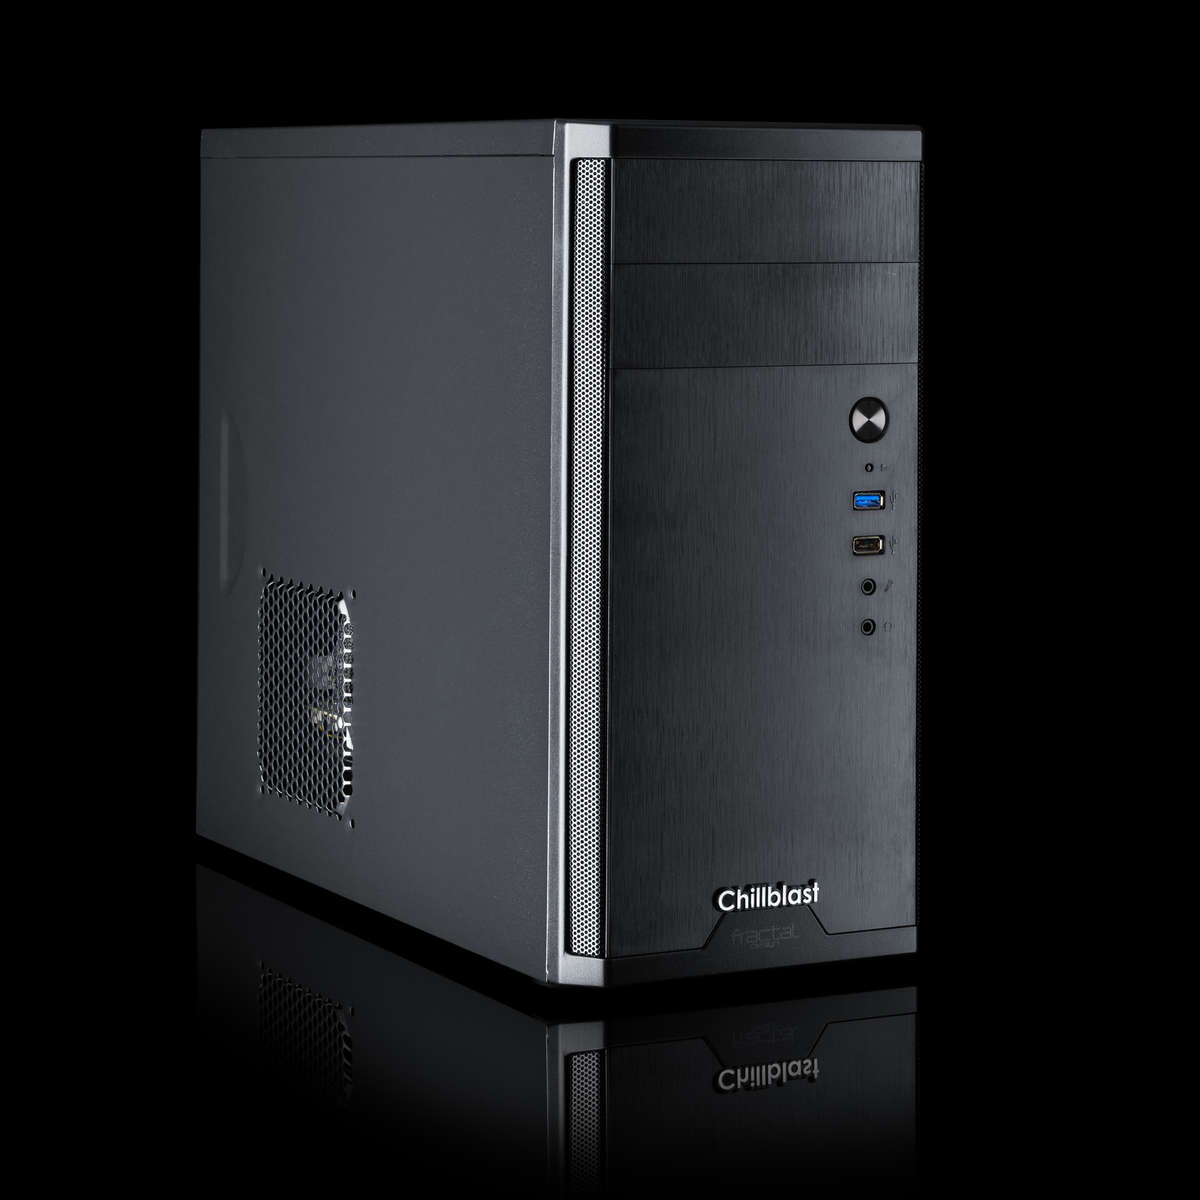 Chillblast Fusion Core GTX 750 Ti Gaming PC - Outlet